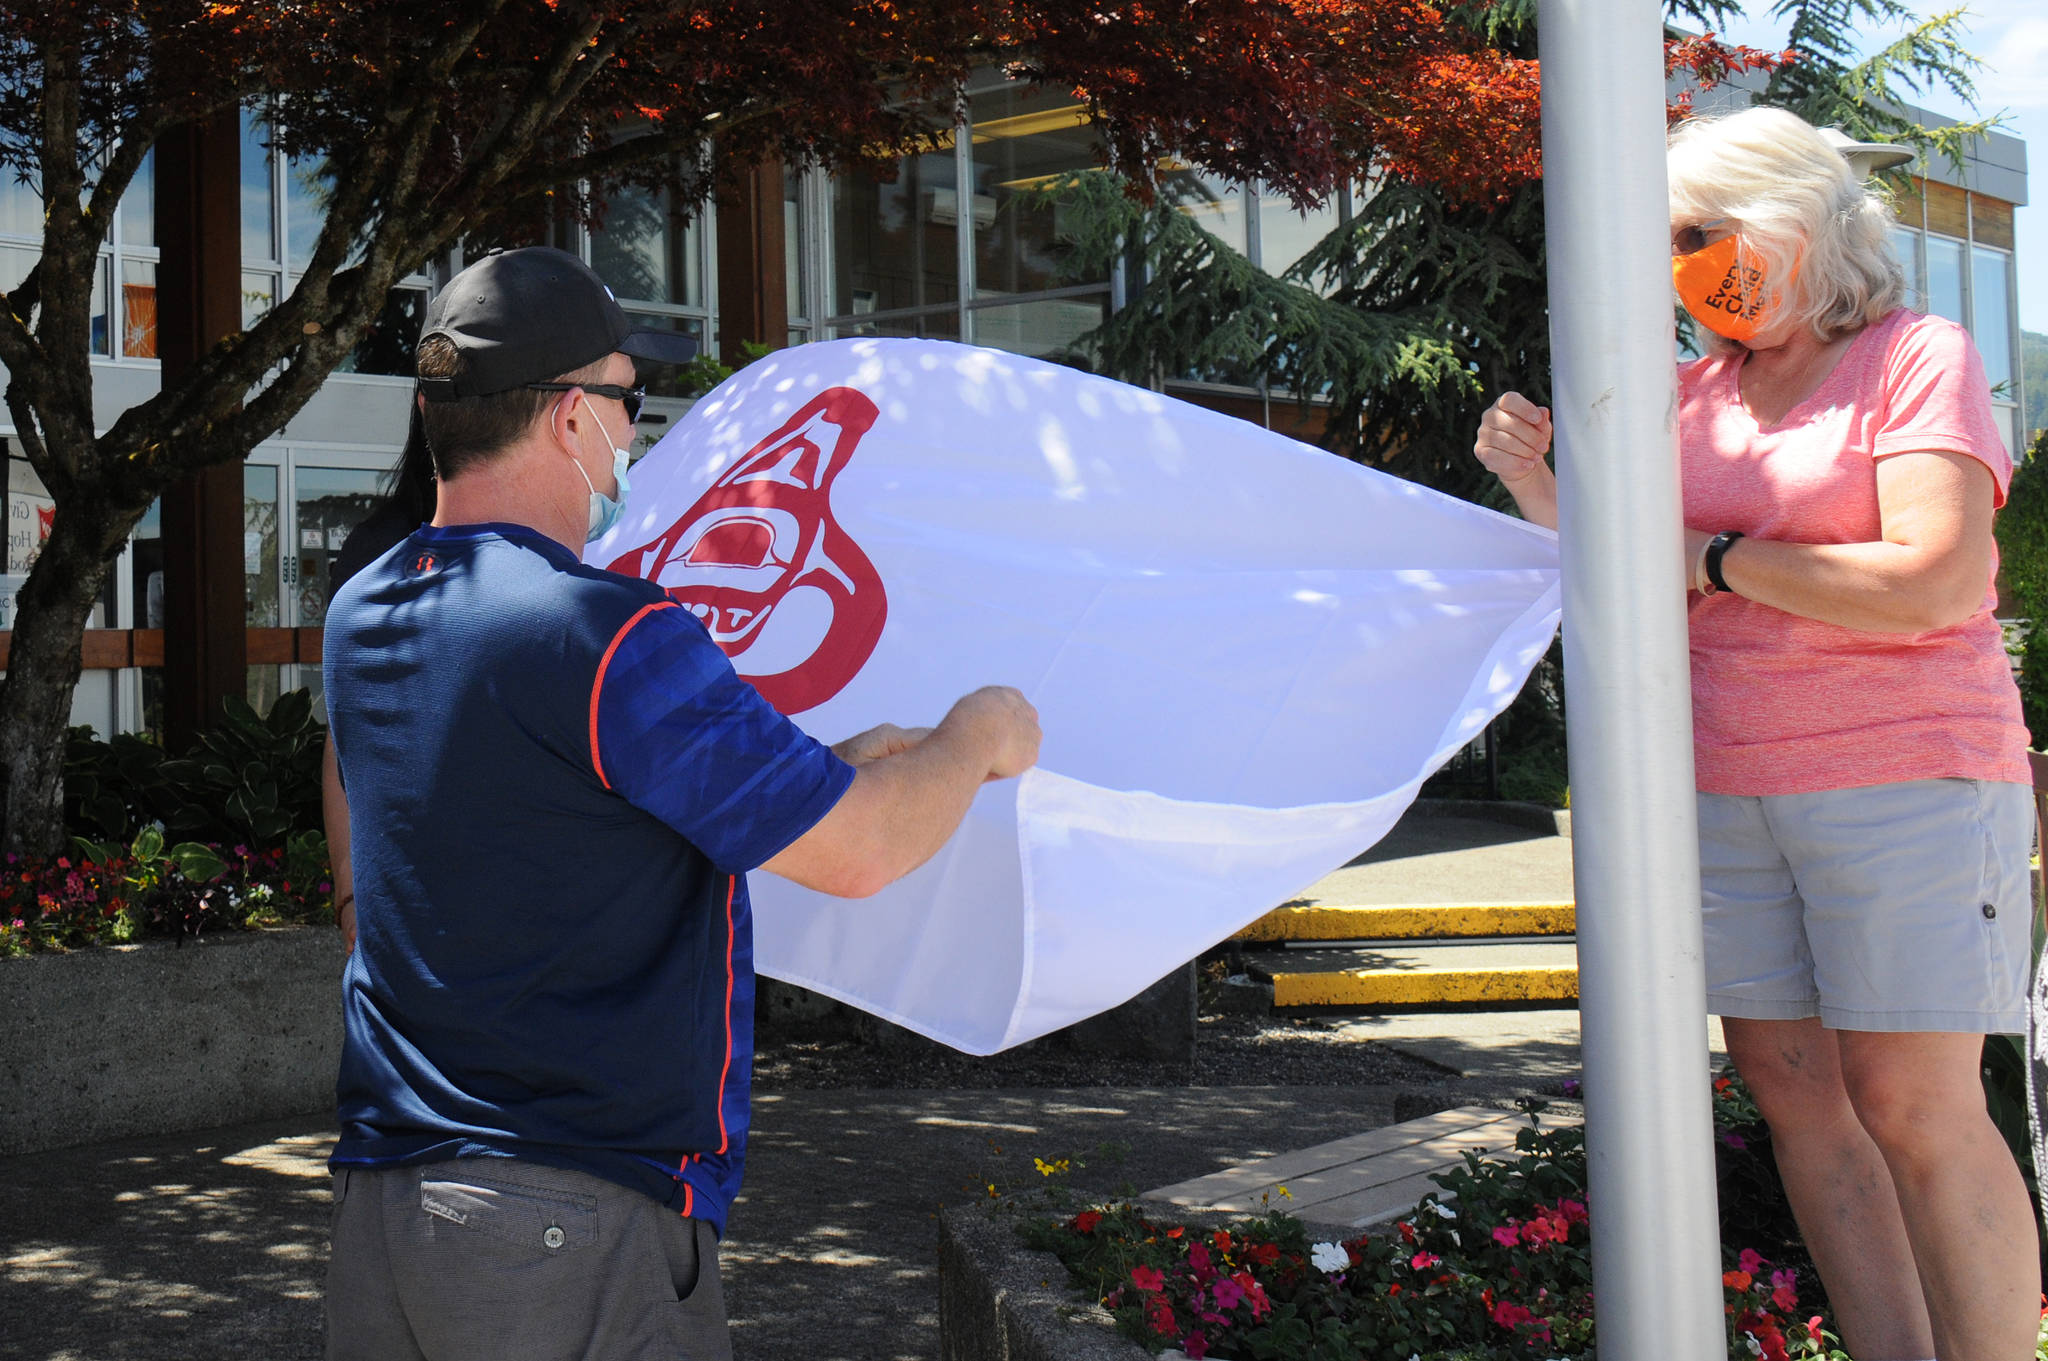 A City of Port Alberni employee assists a member of Hupacasath First Nation in preparing the nation's flag to be raised in front of Port Alberni City Hall on Monday, June 21, 2021. (SUSAN QUINN/ Alberni Valley News)